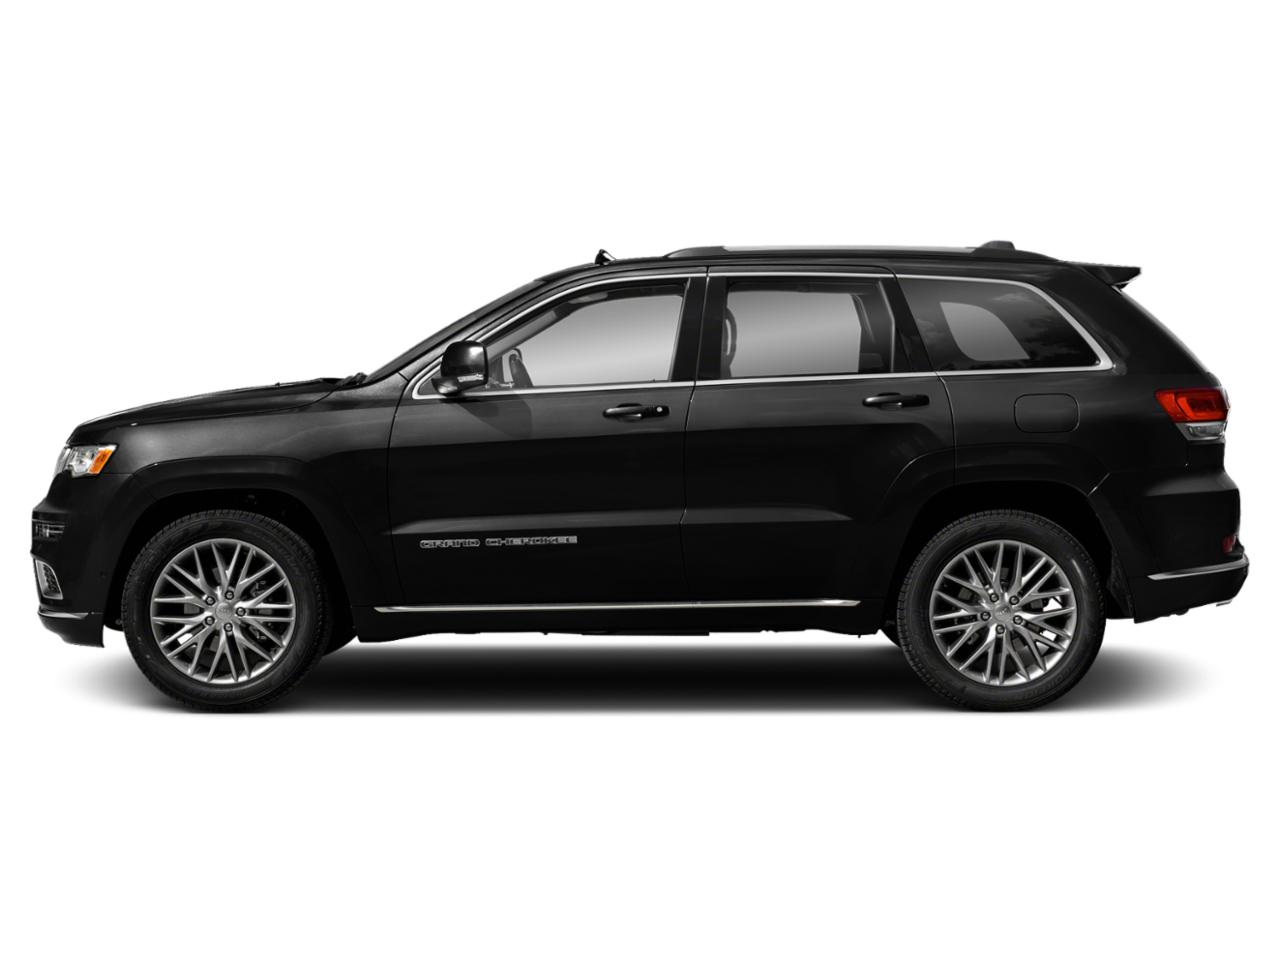 Used 2018 Jeep Grand Cherokee Summit with VIN 1C4RJFJG2JC303476 for sale in Red Wing, Minnesota